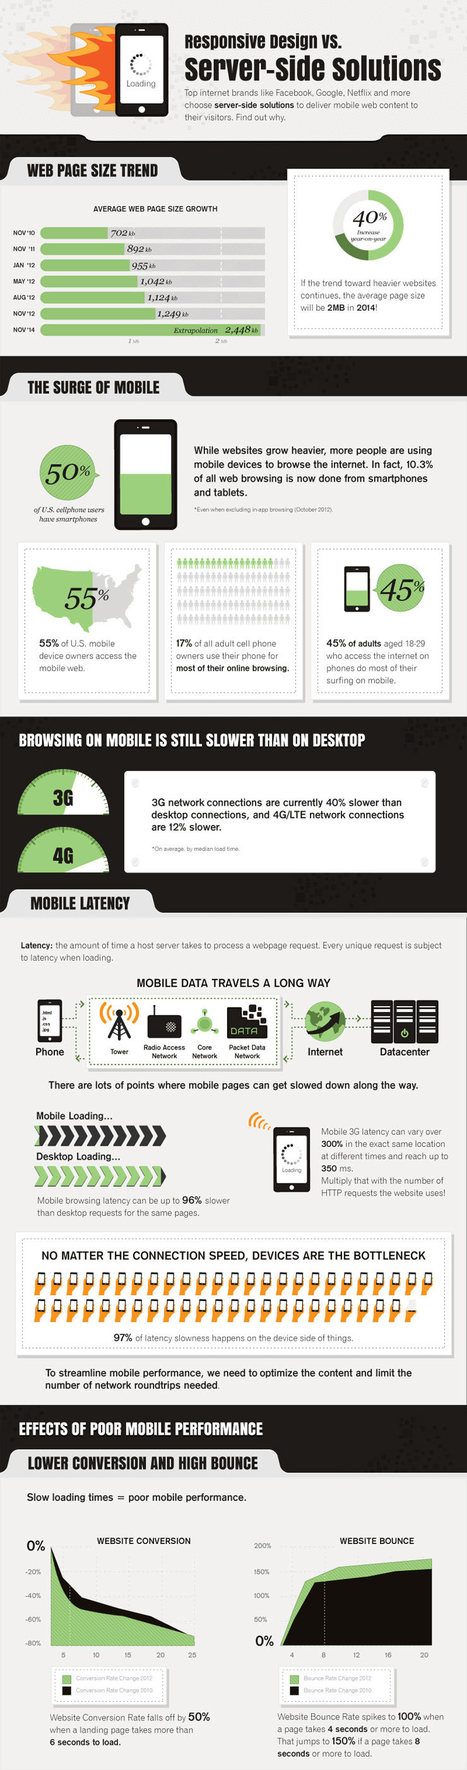 Responsive Design vs Server-side Mobile Solutions /@BerriePelser | WordPress Google SEO and Social Media | Scoop.it